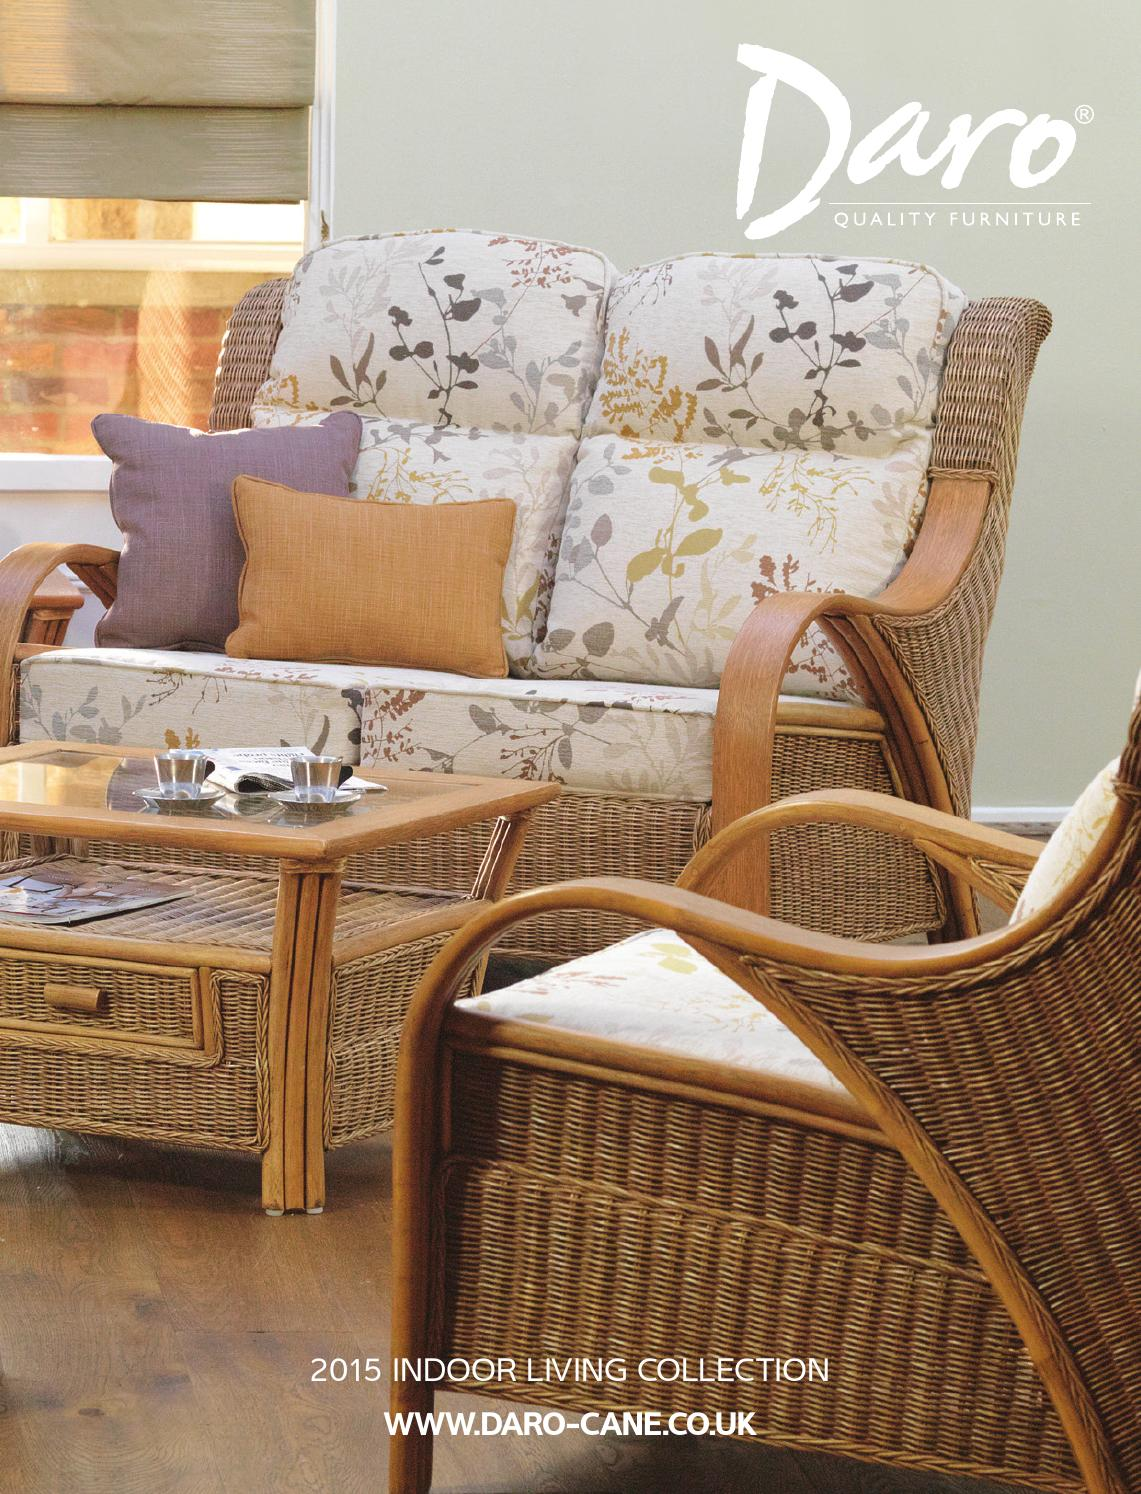 Daro indoor living collection 2015 by daro trading ltd issuu